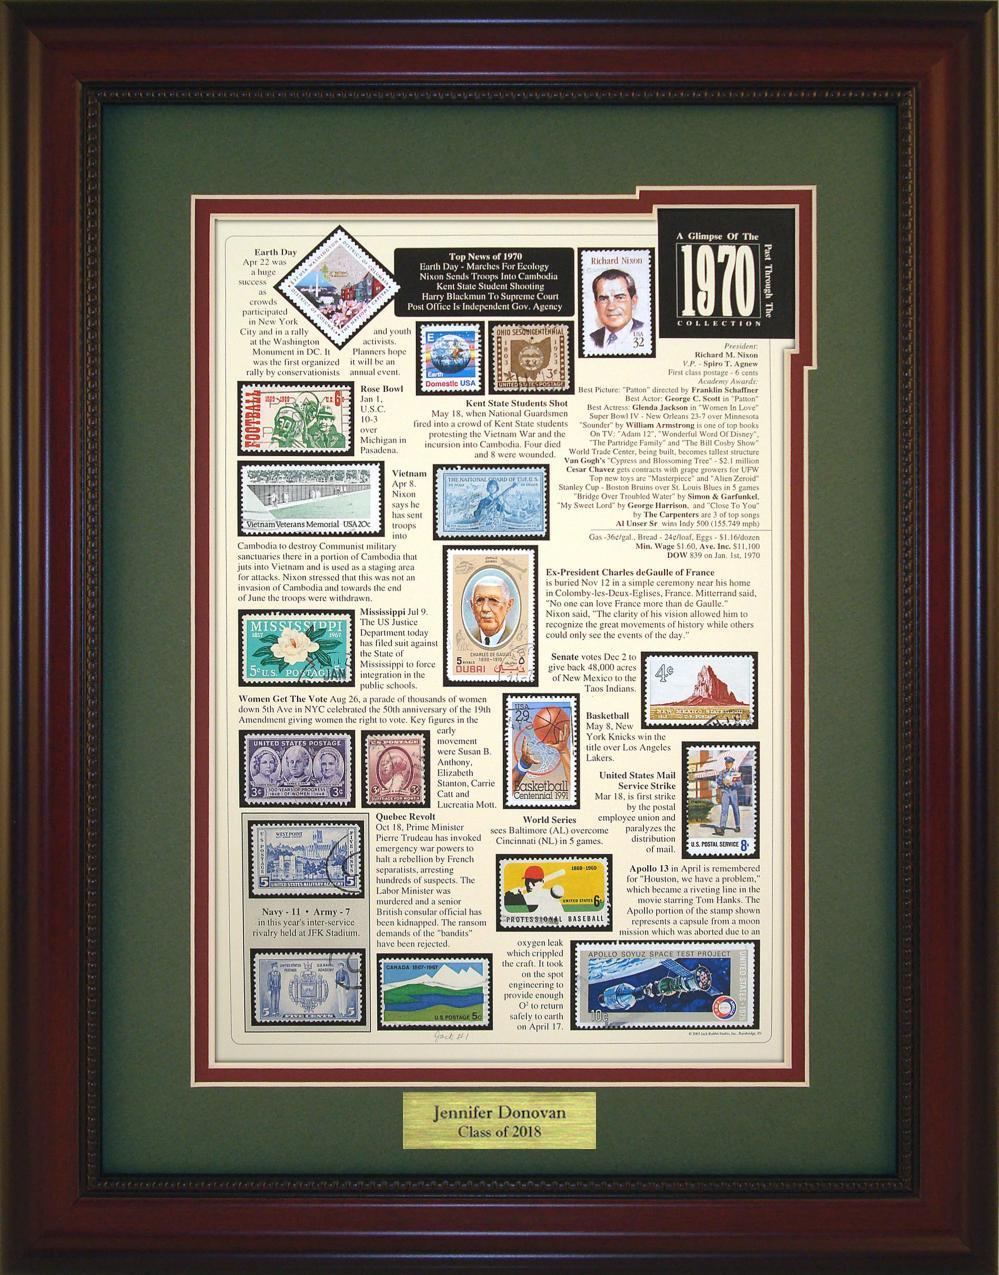 Year 1970 - Personalized Unique Framed Gift